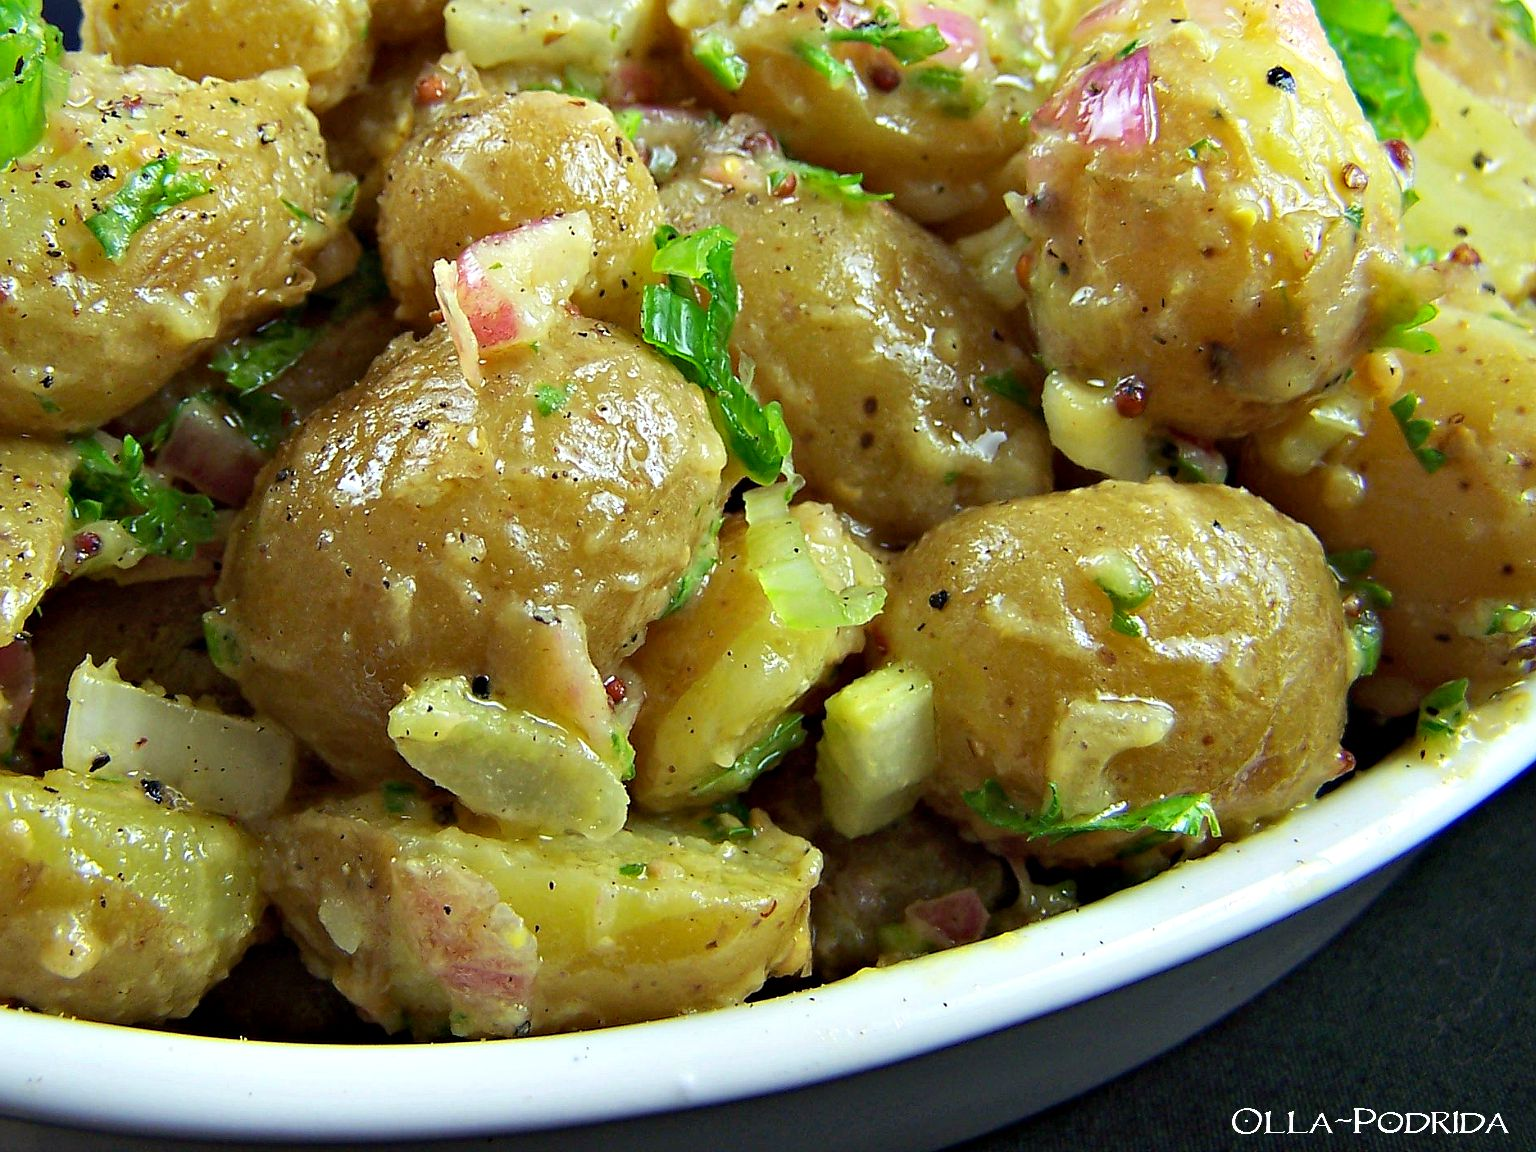 Olla-Podrida: Warm New Potato Salad with Vinegar and Mustard